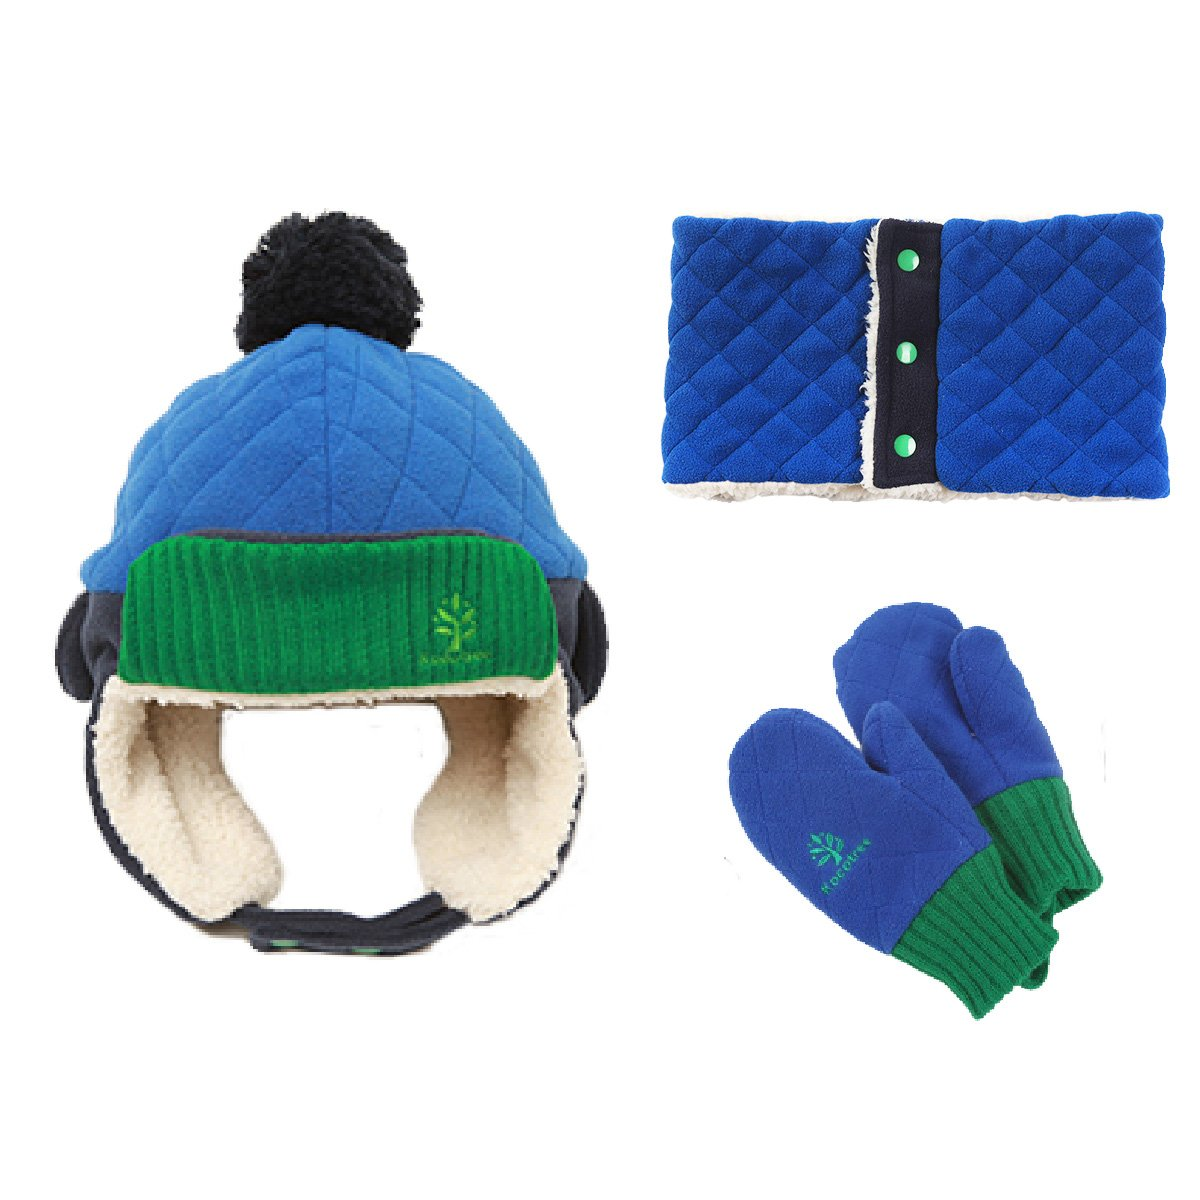 Triwonder Little Boys Girls Toddlers Winter Warm Fleece Flap Hat Scarf Mittens Set (M(1-5 years old), Navy Blue) OS1102NB-M